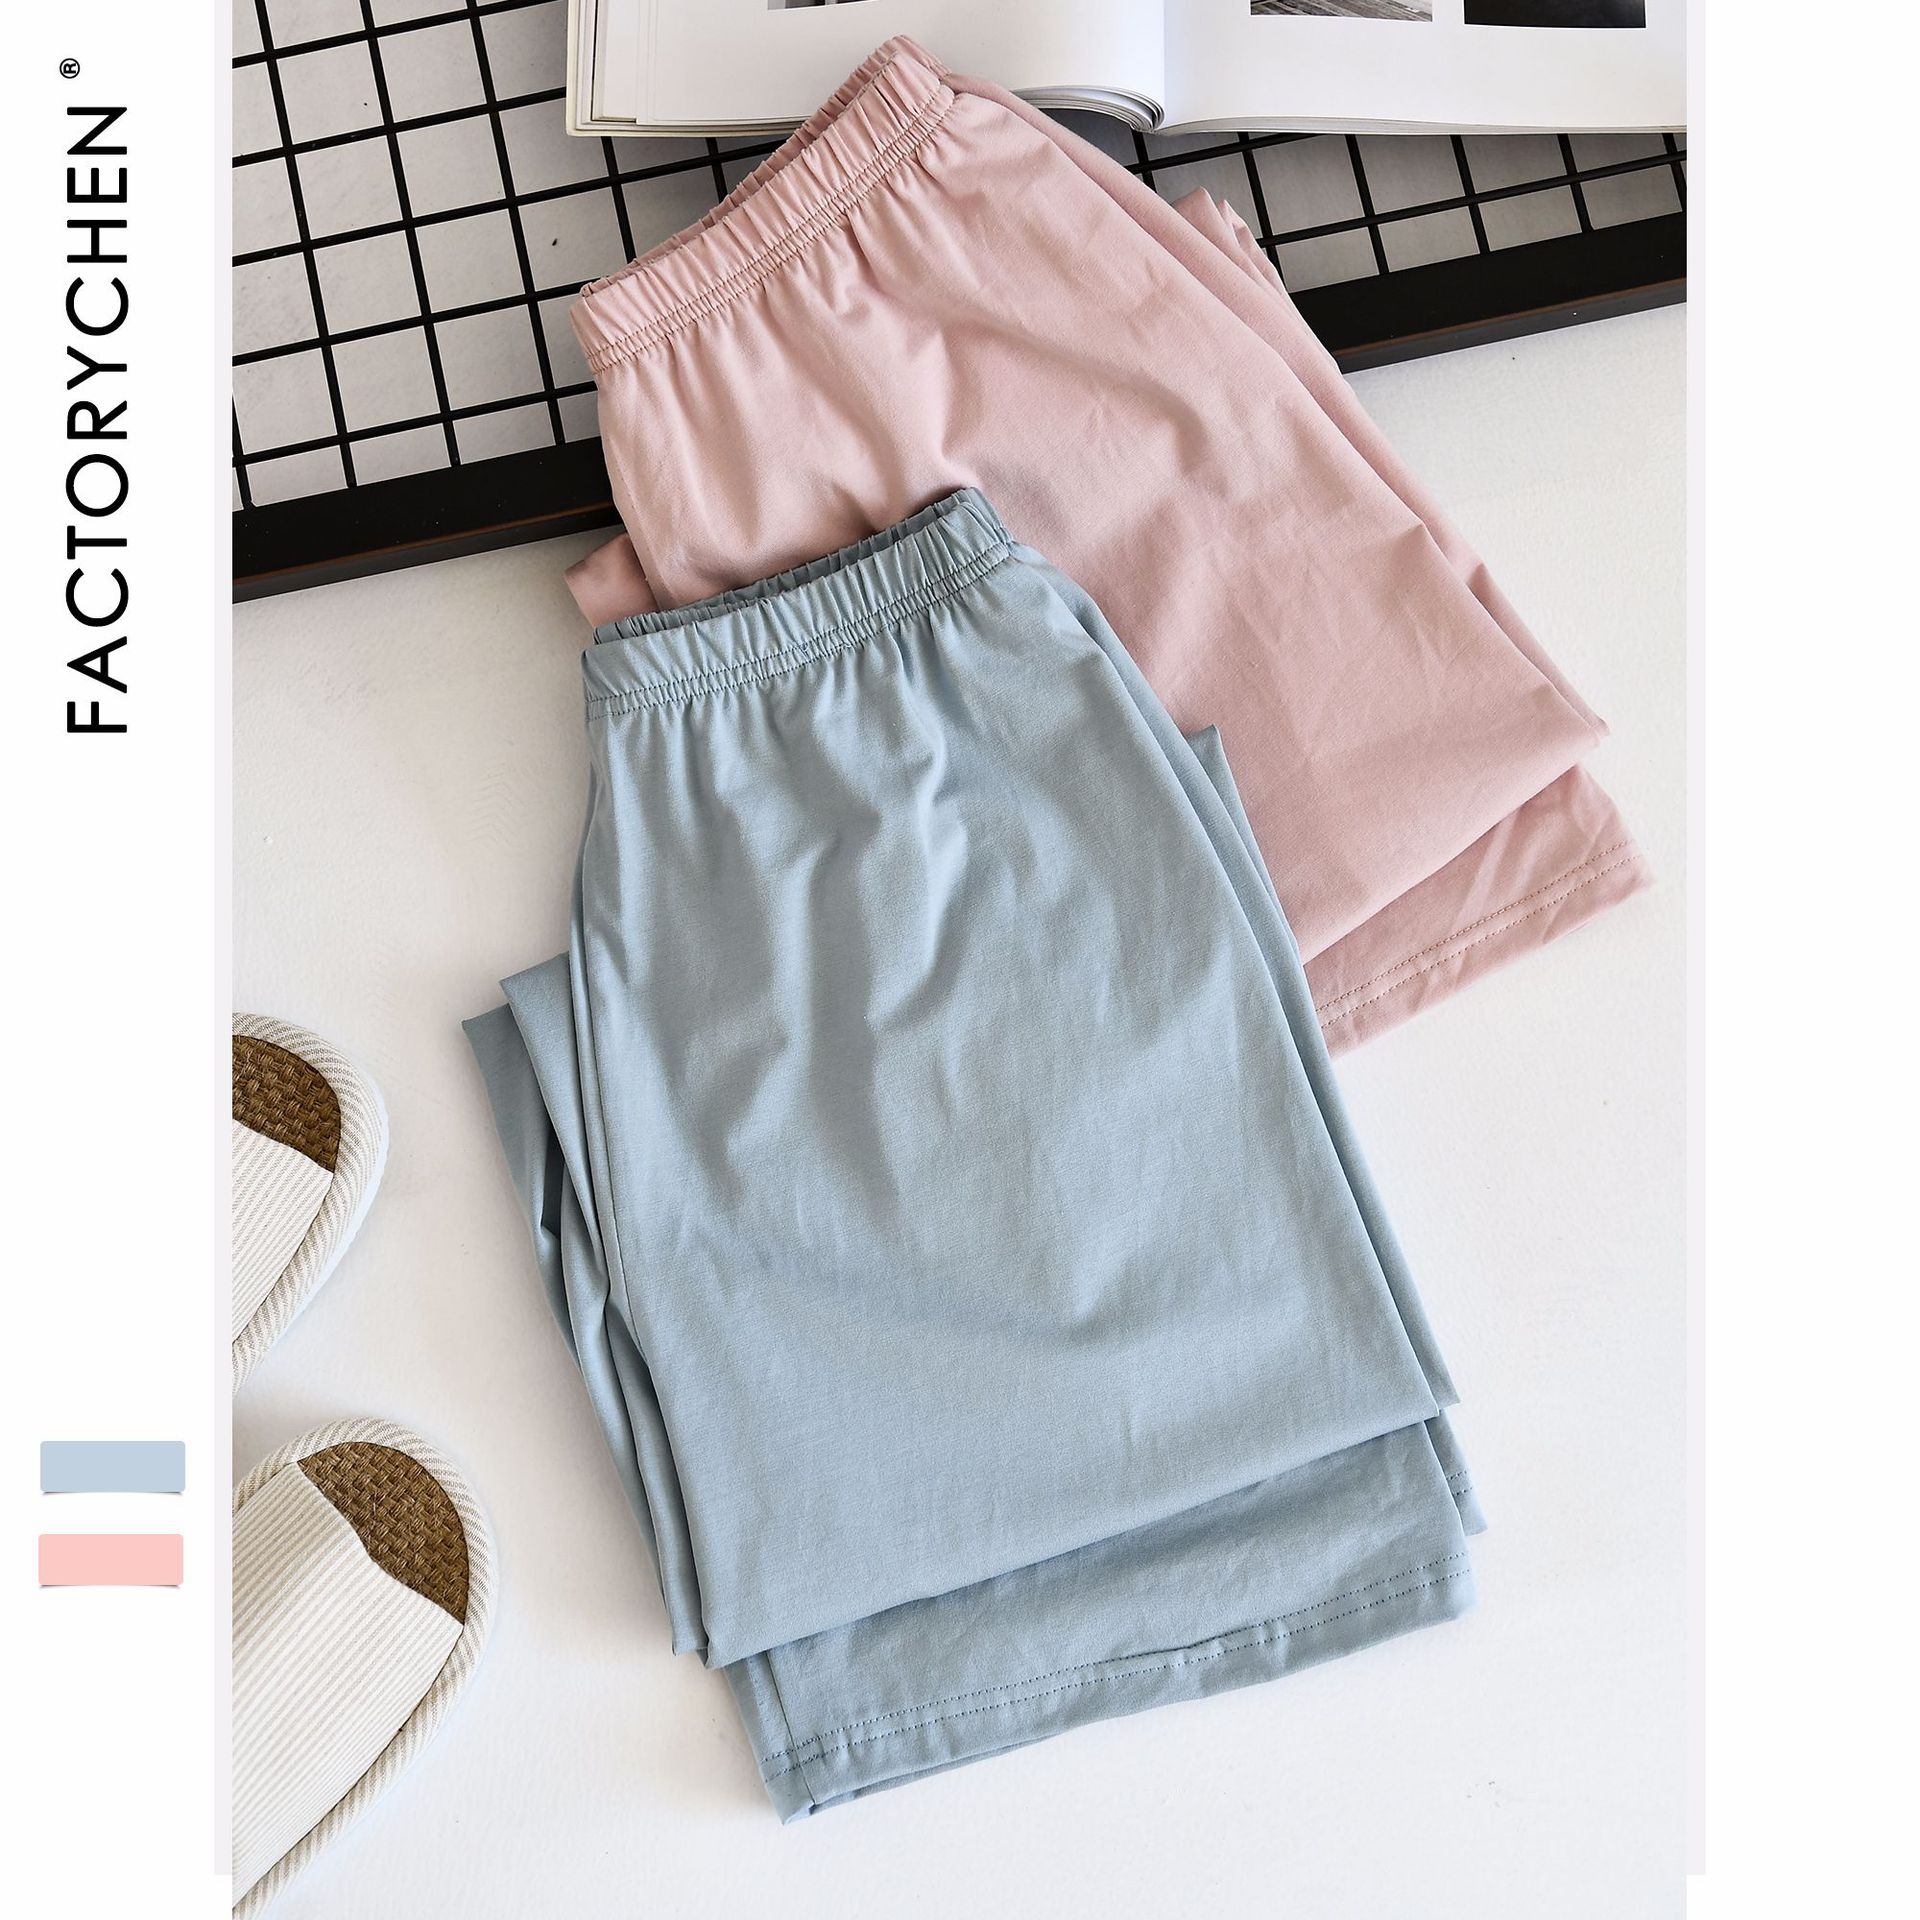 Summer Female Loose Plus Size Sleep Bottoms Comfortable Good Material Elastic Ammonia + Cotton Thin Household Sleepwear Pants 1